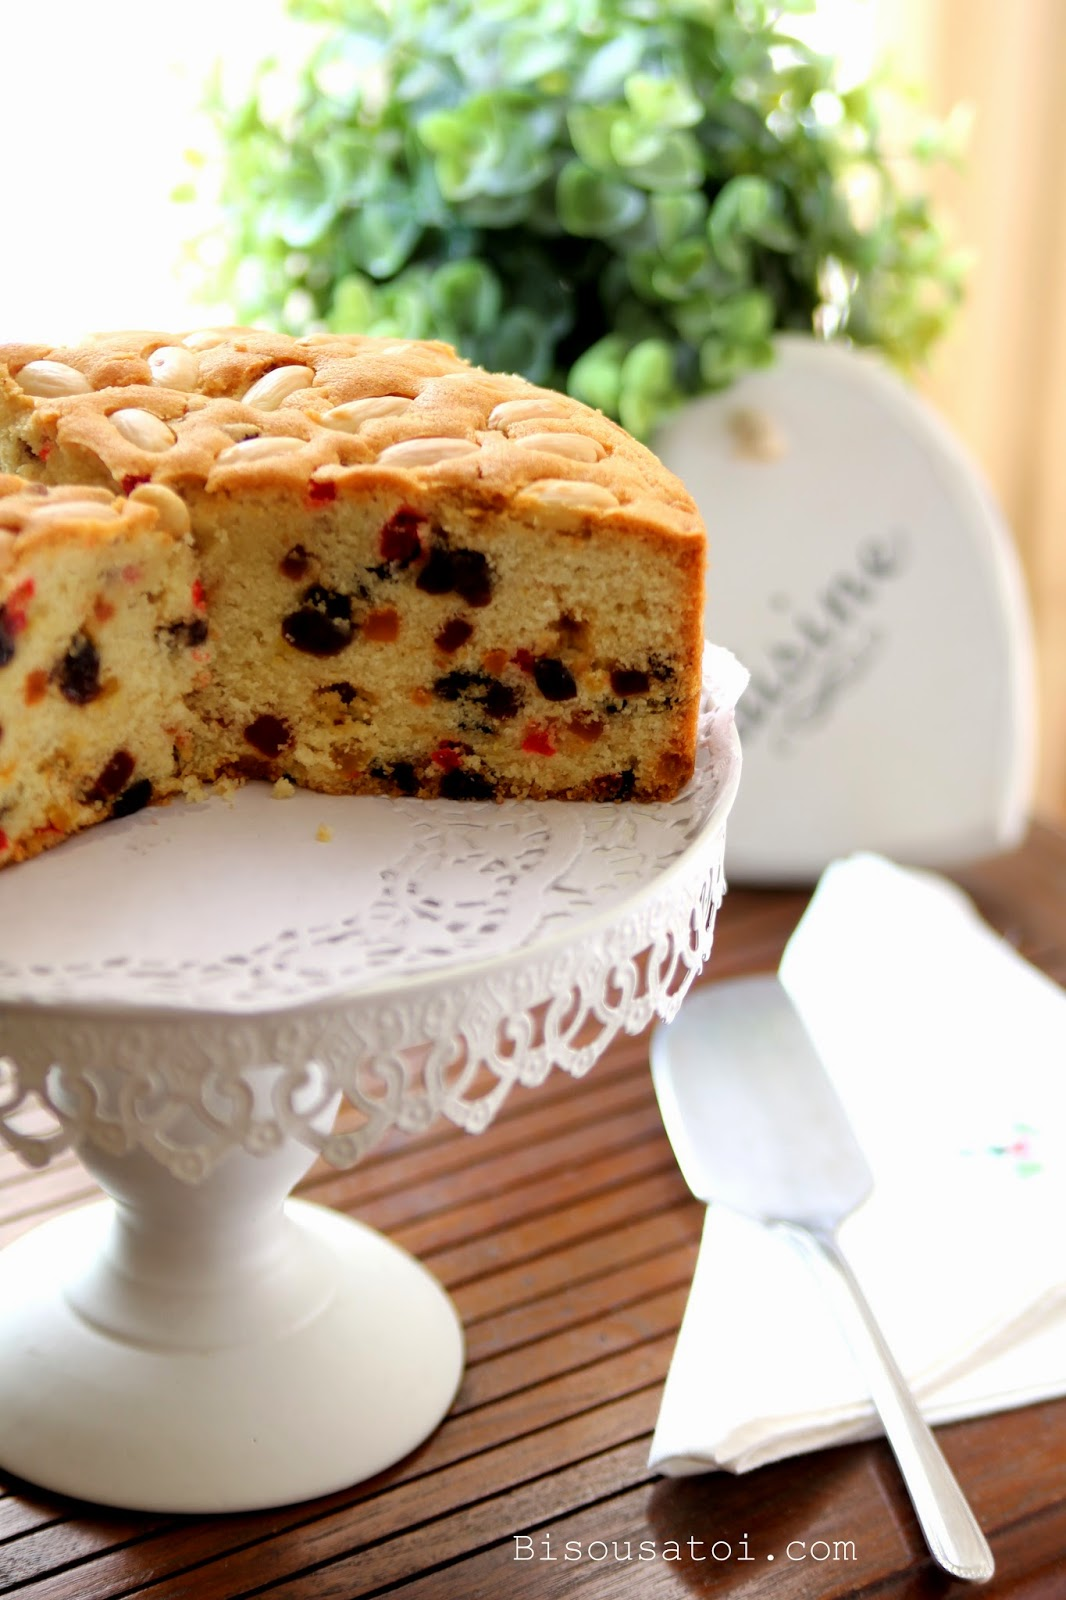 Dundee Cake - Bisous À Toi